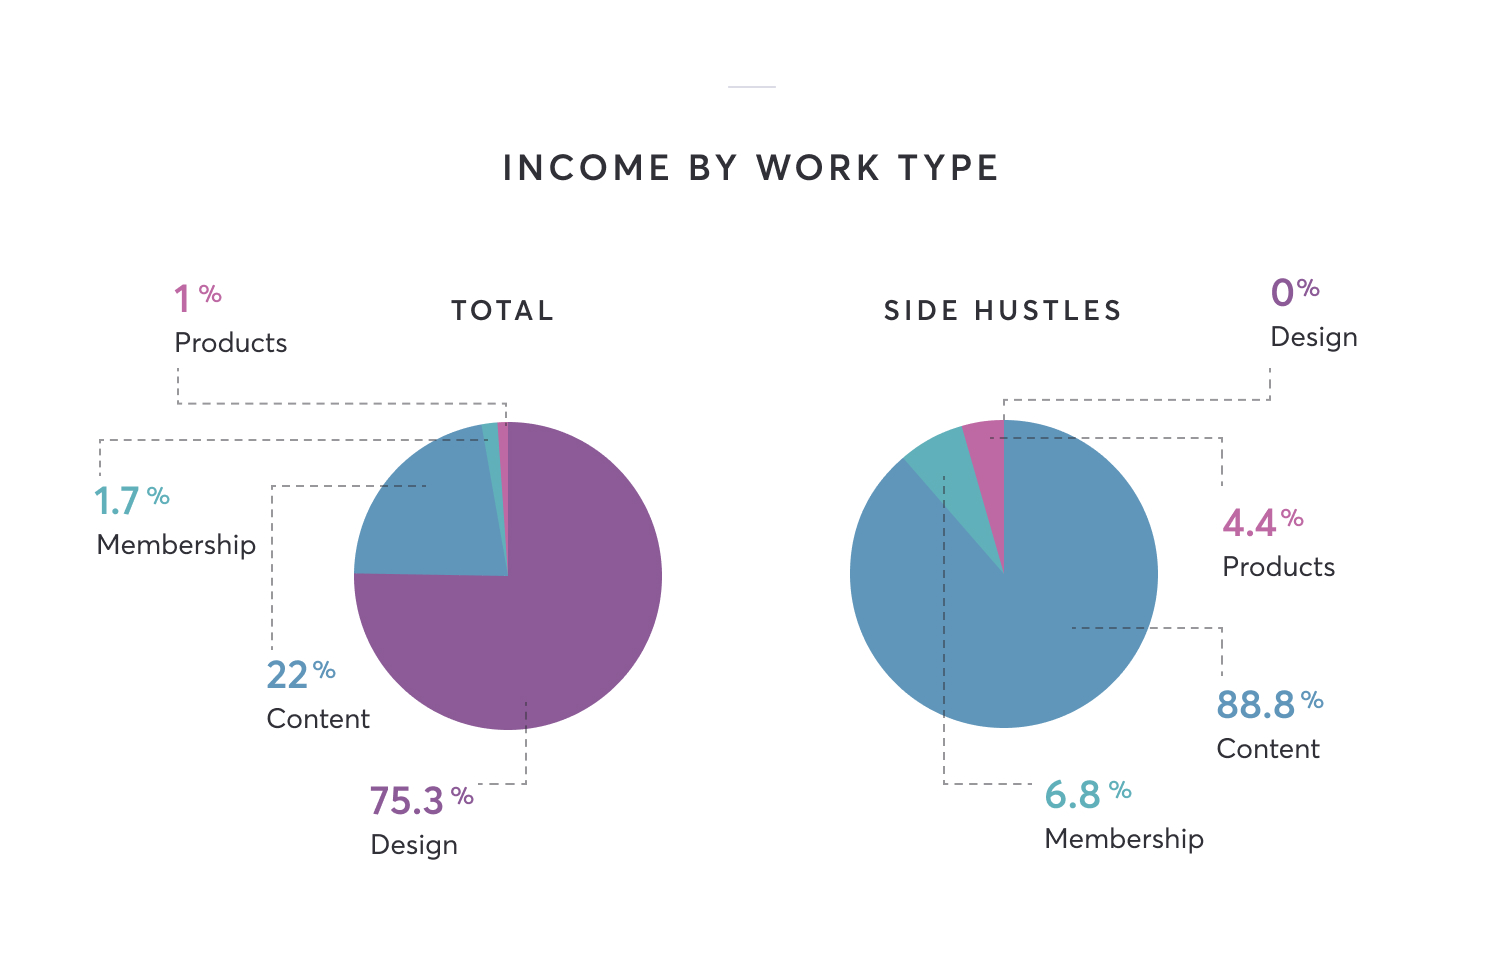 Chart showing that of total income 1% is products, 1.7% is membership, 22% is content and 75.3% is design. And of side hustle income 0% is design, 4.4% is products, 6.8% is membership and 88.8% is content income.